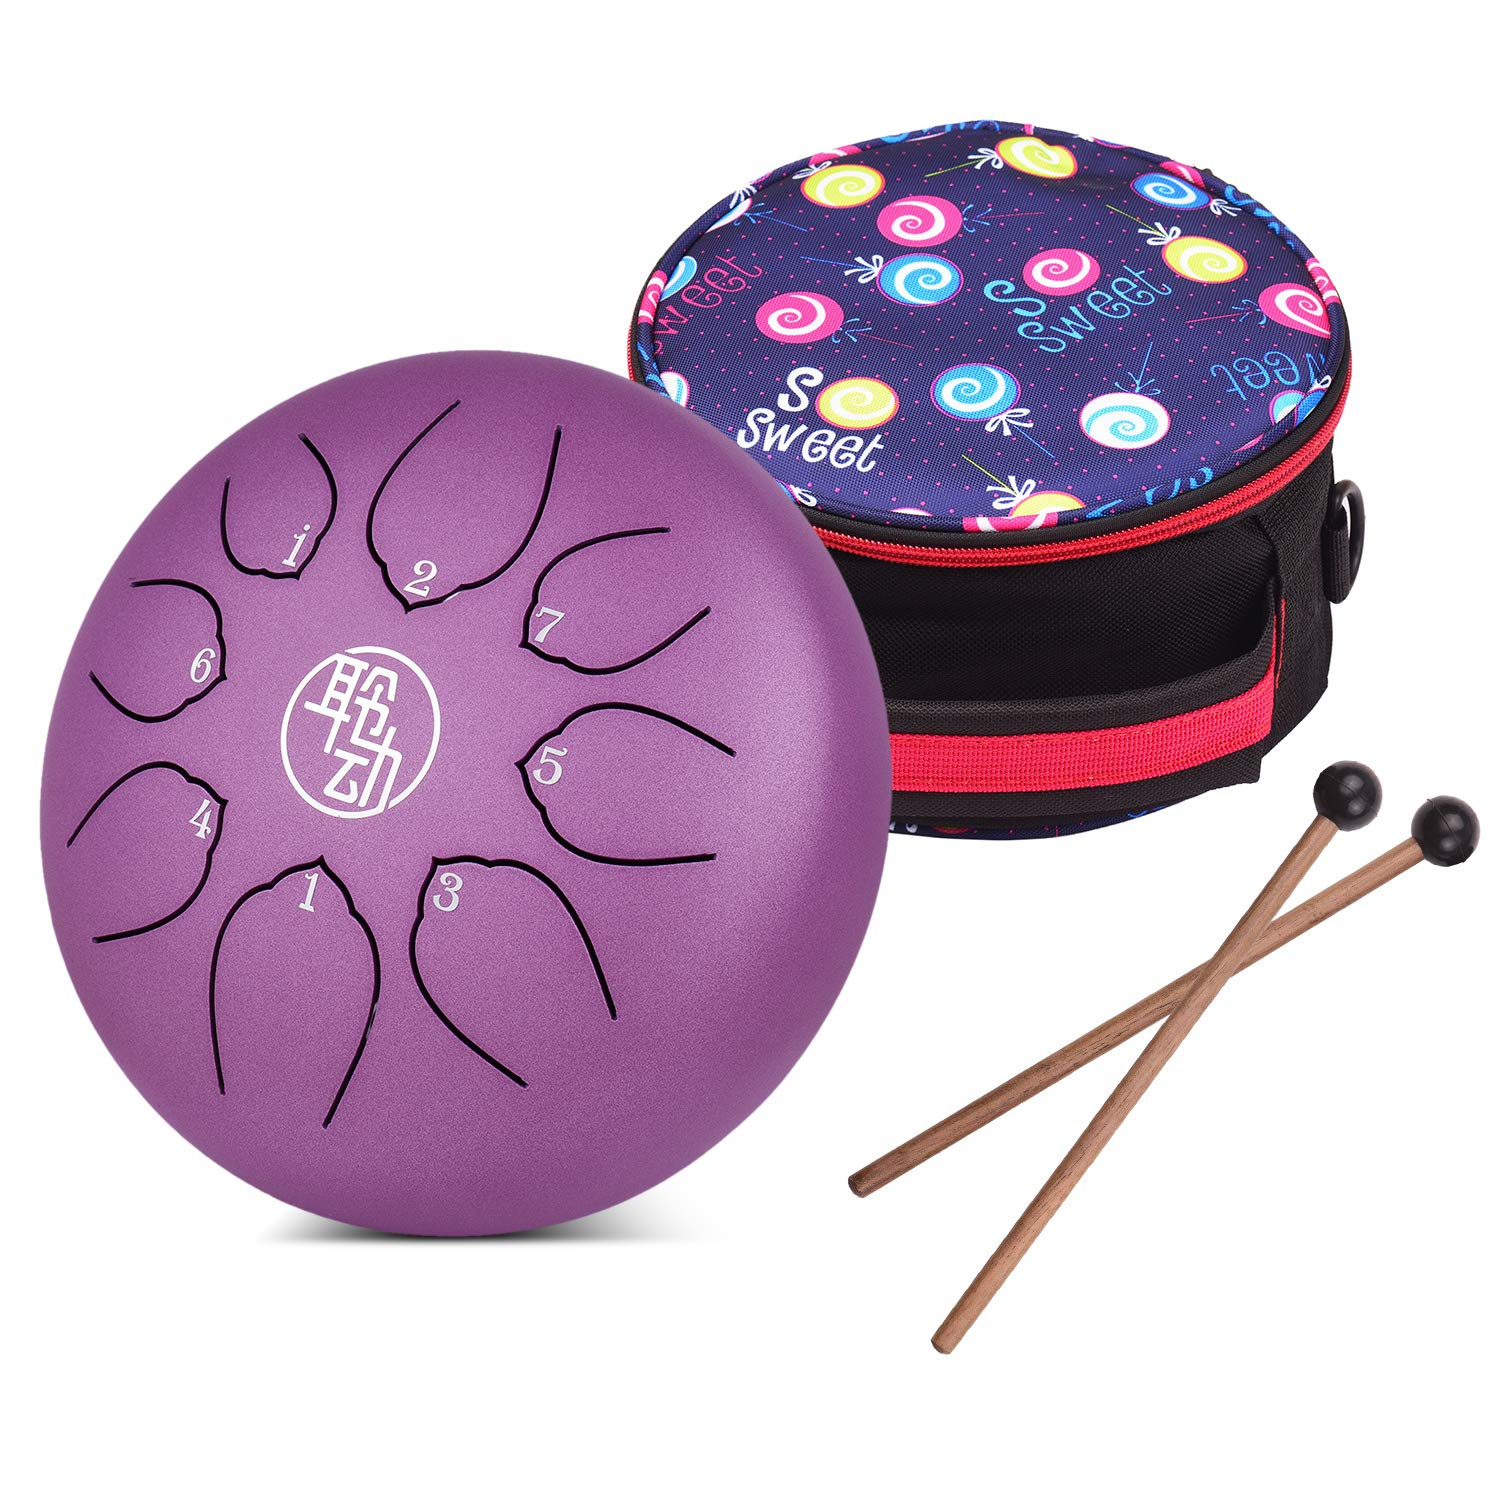 Drum Sets & Set Components Drums & Percussion 6-8 Inches Steel ...